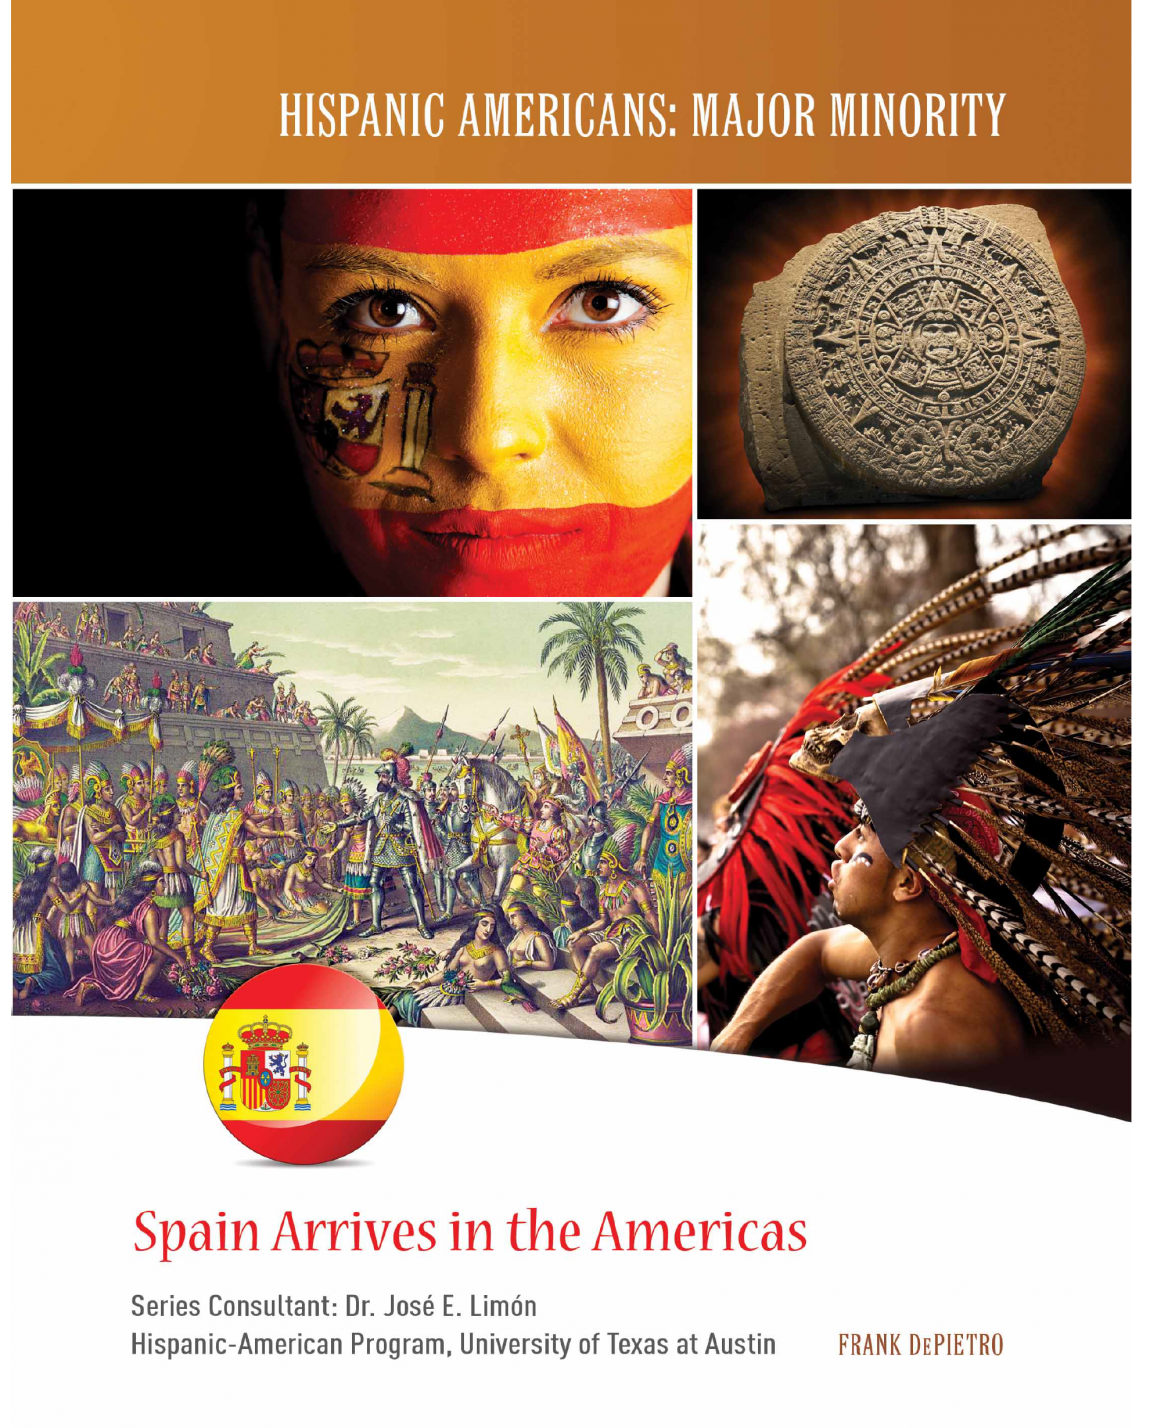 spain-arrives-in-the-americas-01.png